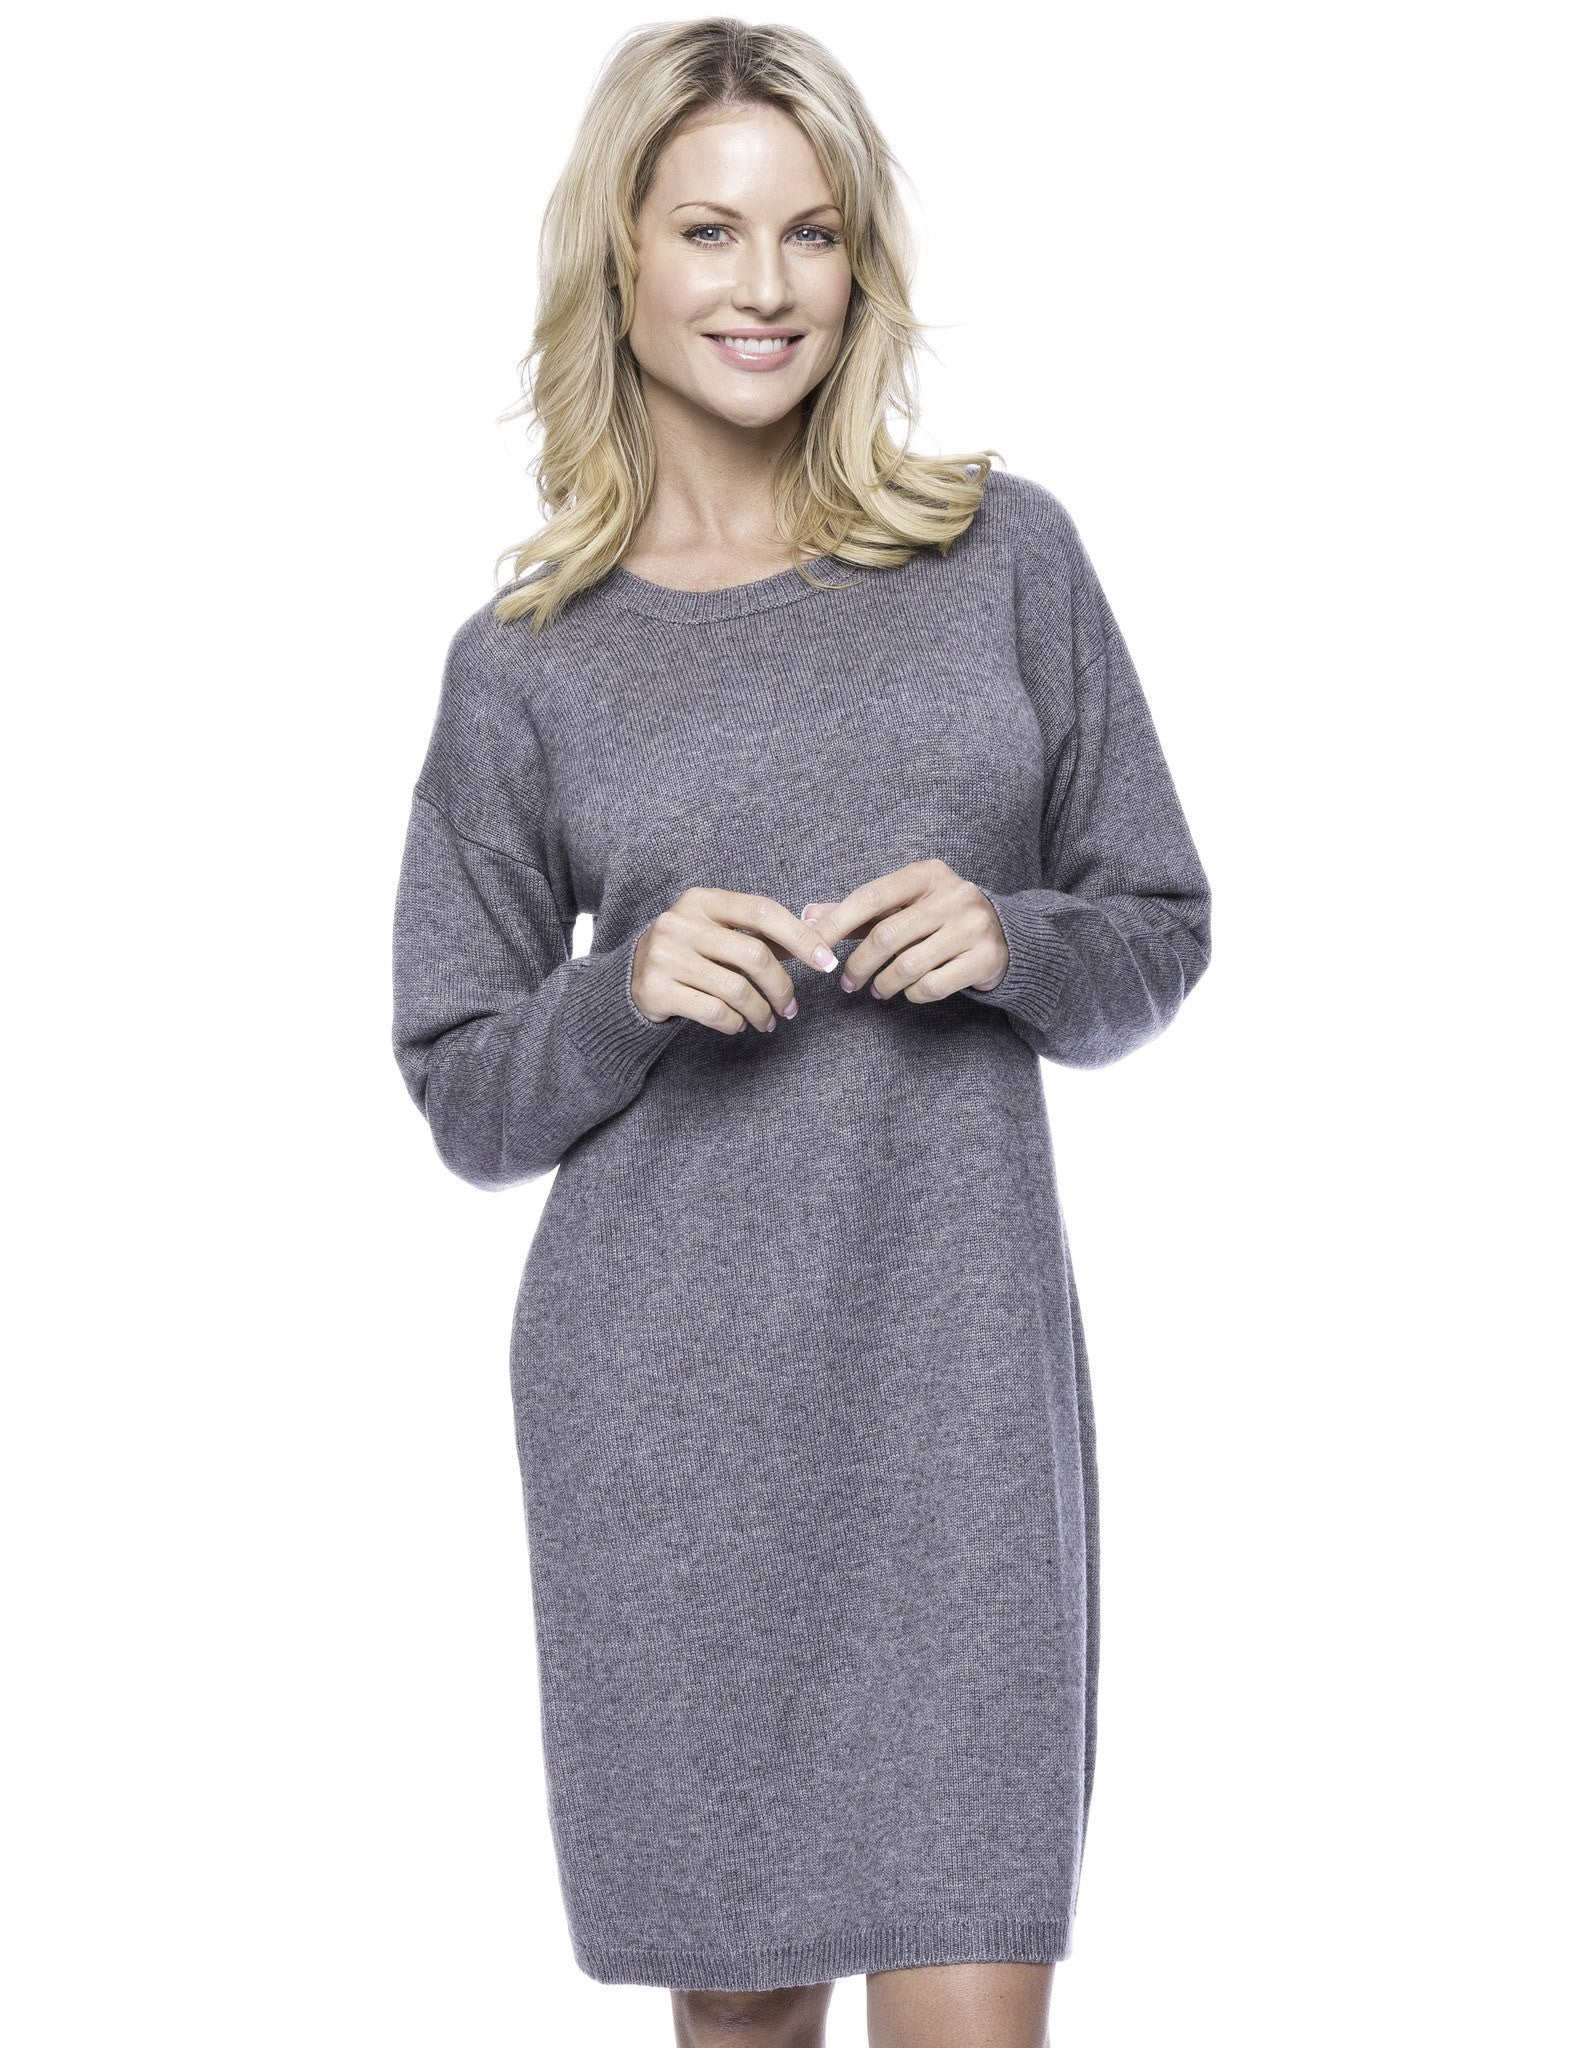 Box-Packaged Tocco Reale Women's Wool Blend Sweater Dress